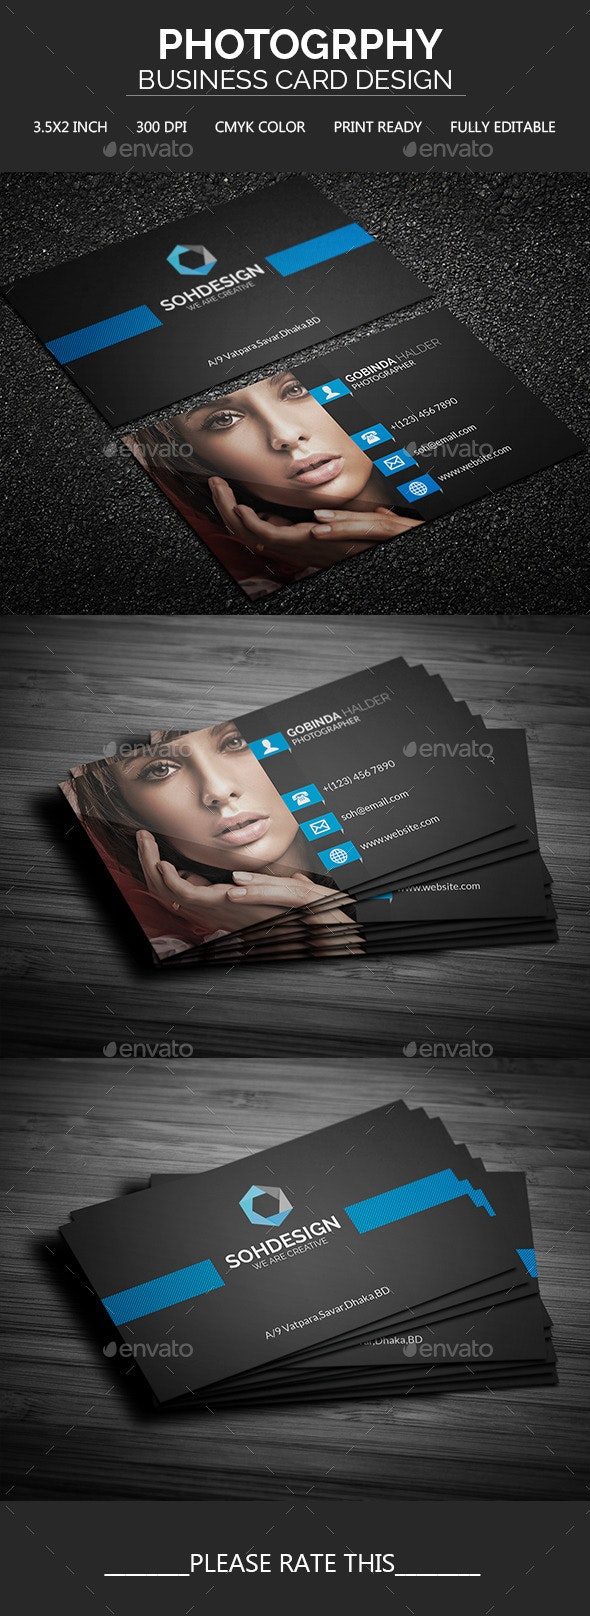 Photography Business Card Template - Business Cards Print Templates